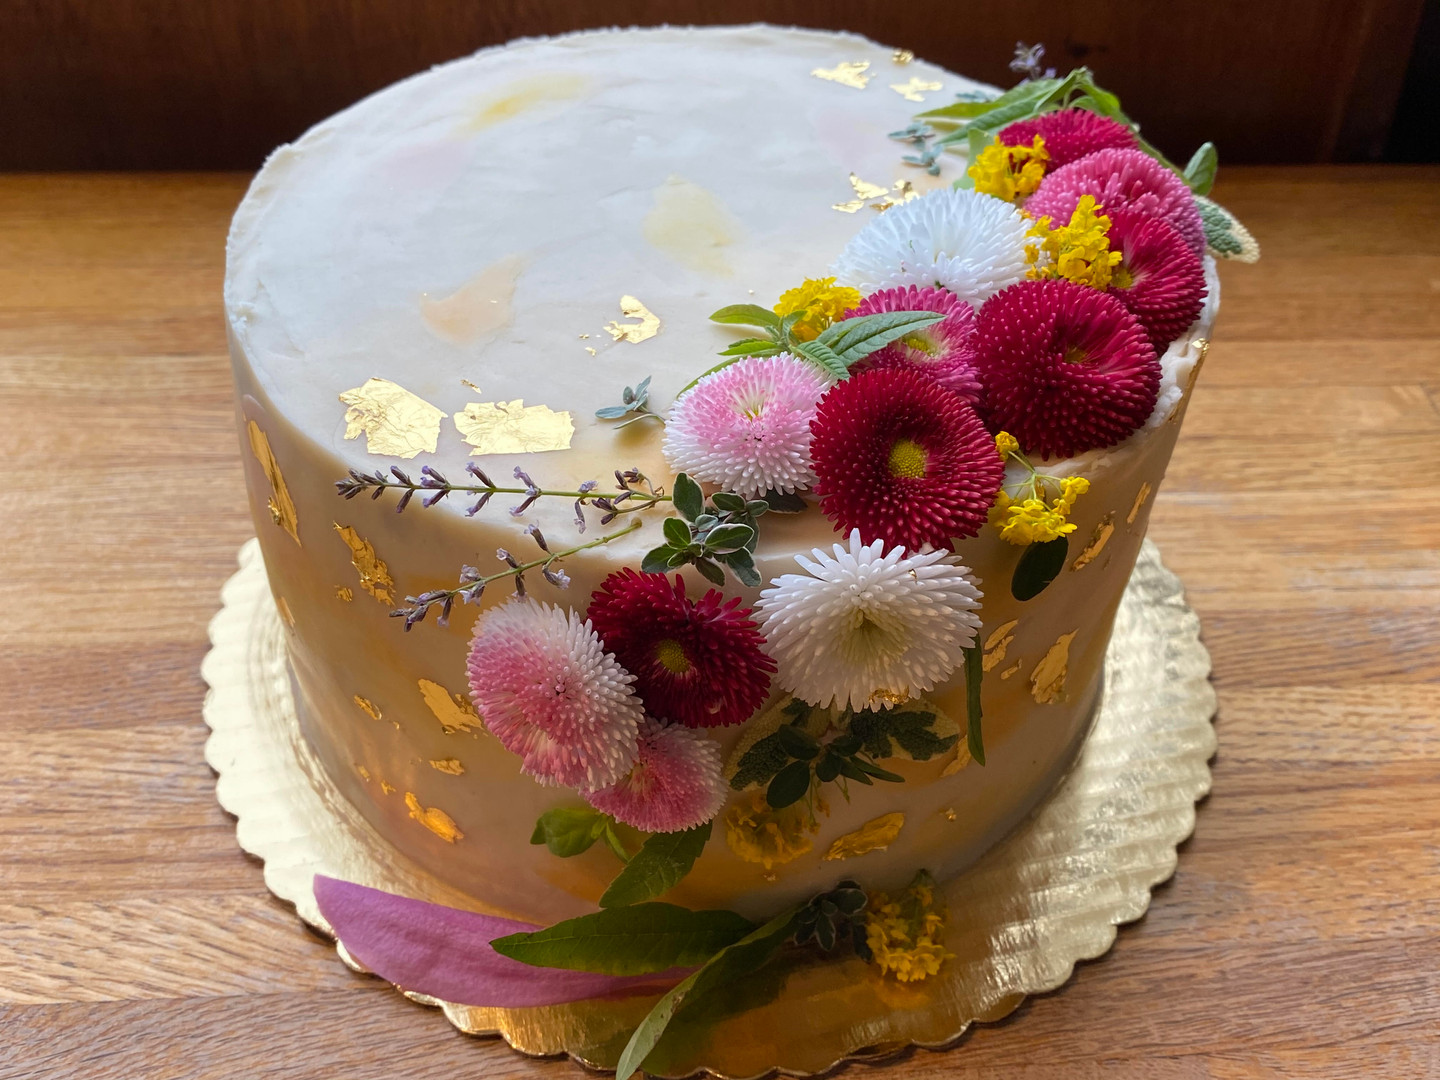 Cake with gold leaf and floral accent